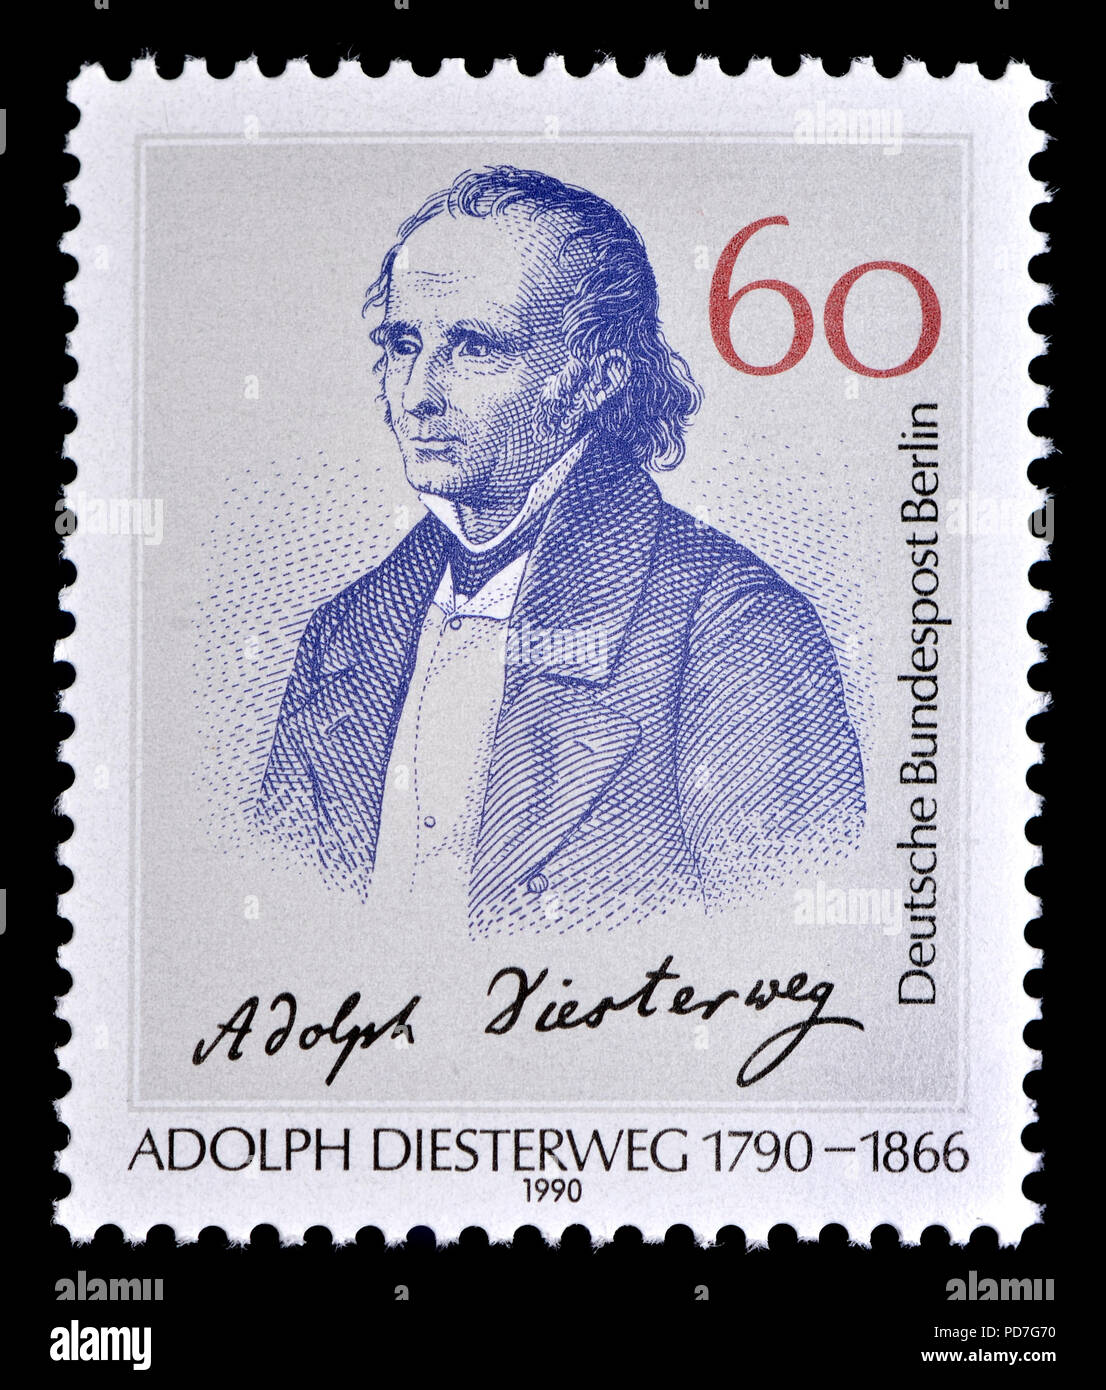 German postage stamp (Berlin: 1990) : Friedrich Adolph Wilhelm Diesterweg (1790 – 1866) German educator and campaigner for the secularization of schoo - Stock Image